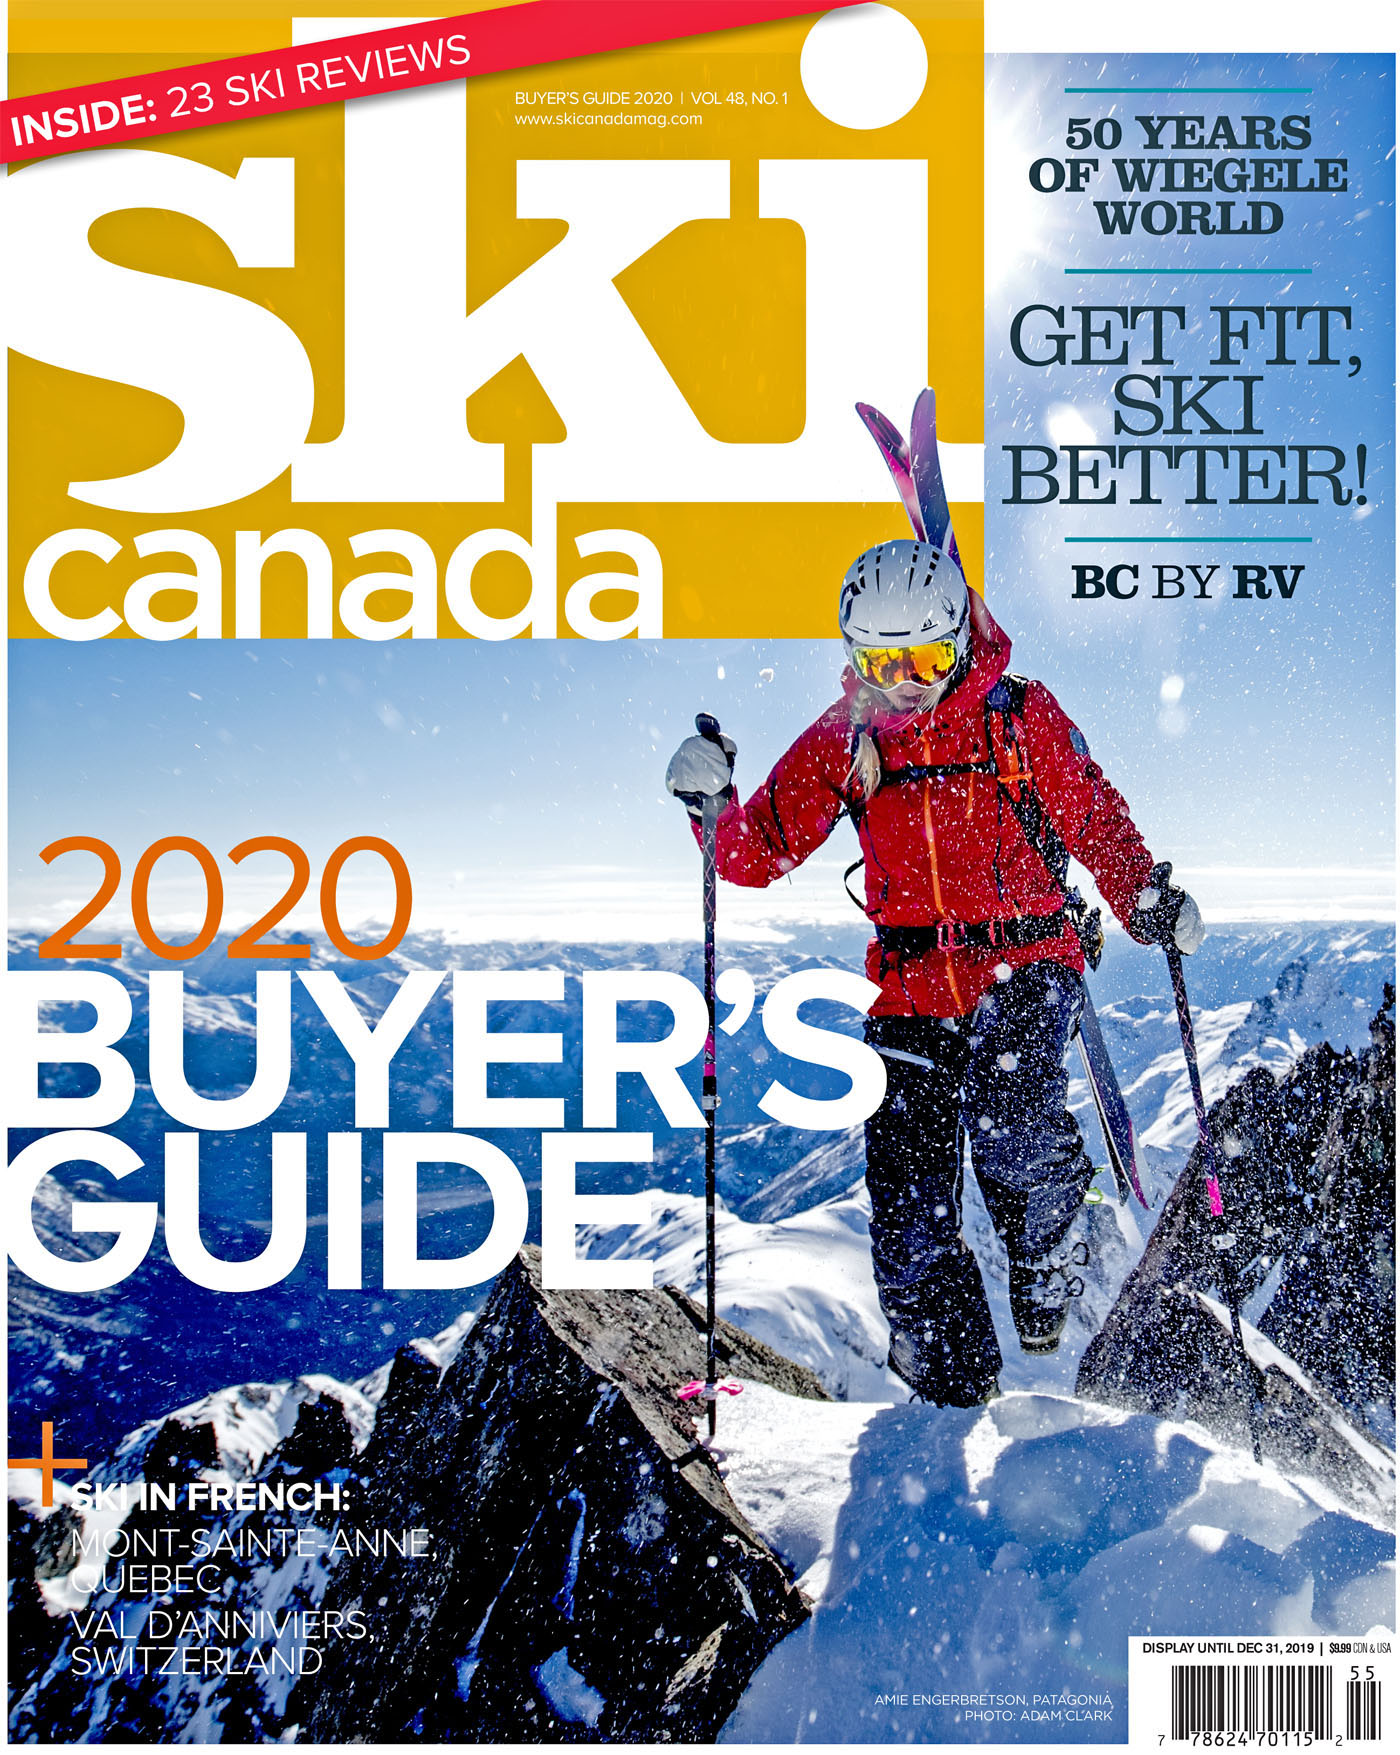 Buyer's Guide 2020 cover